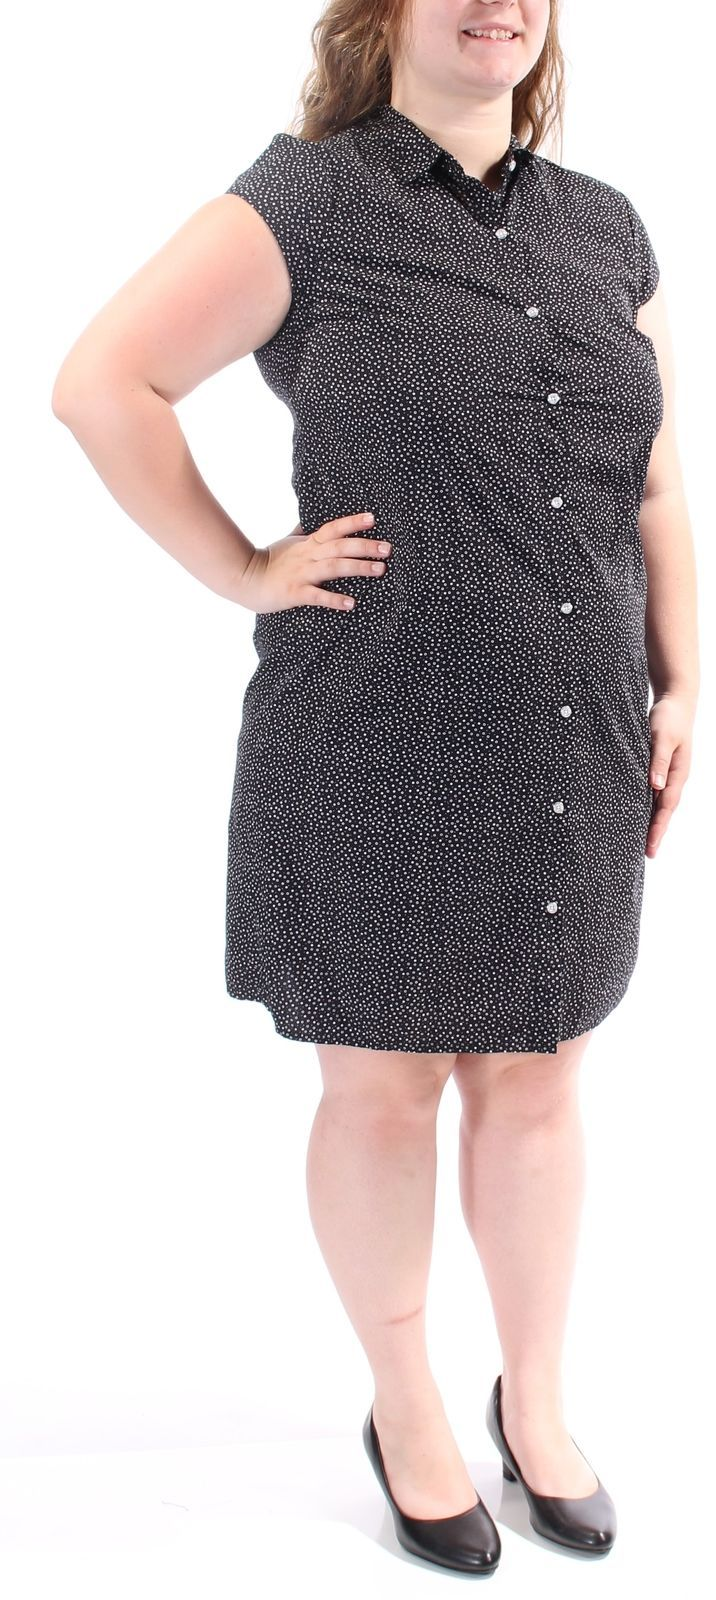 Nice Great TOMMY HILFIGER $80 New 1485 Black Polka Dot Belted Shirt Dress Dress L B+B  2017-2018 Check more at http://24shopping.tk/fashion-clothes/great-tommy-hilfiger-80-new-1485-black-polka-dot-belted-shirt-dress-dress-l-bb-2017-2018/